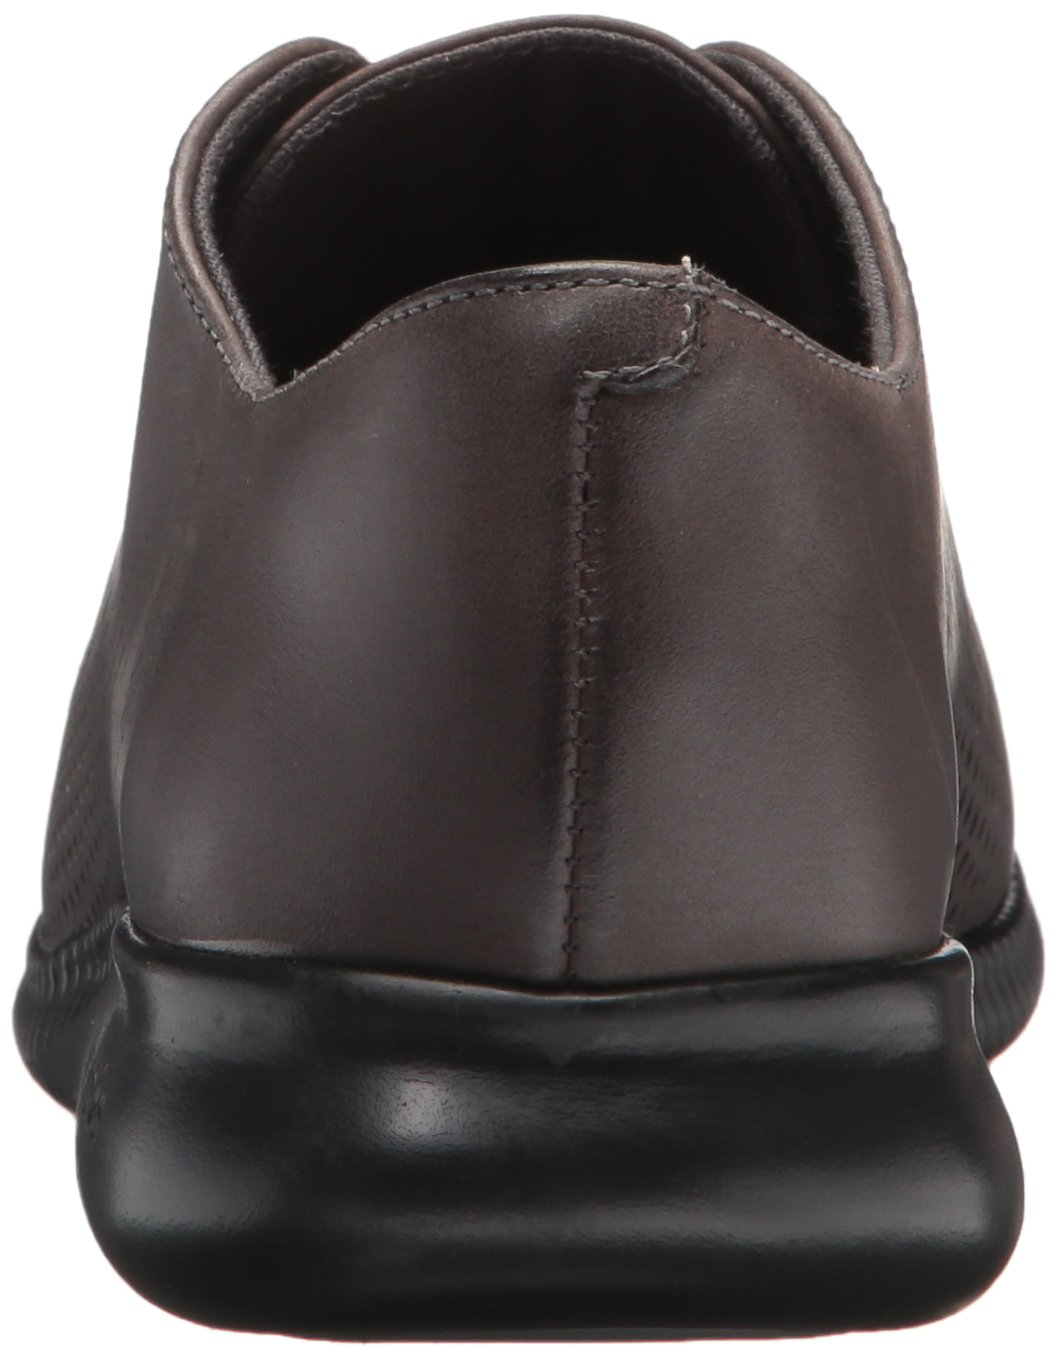 Cole Wing Haan Women's 2.Zerogrand Laser Wing Cole Oxford B071XGD7Q8 7.5 B(M) US|Dark Roast Leather 39d3d8